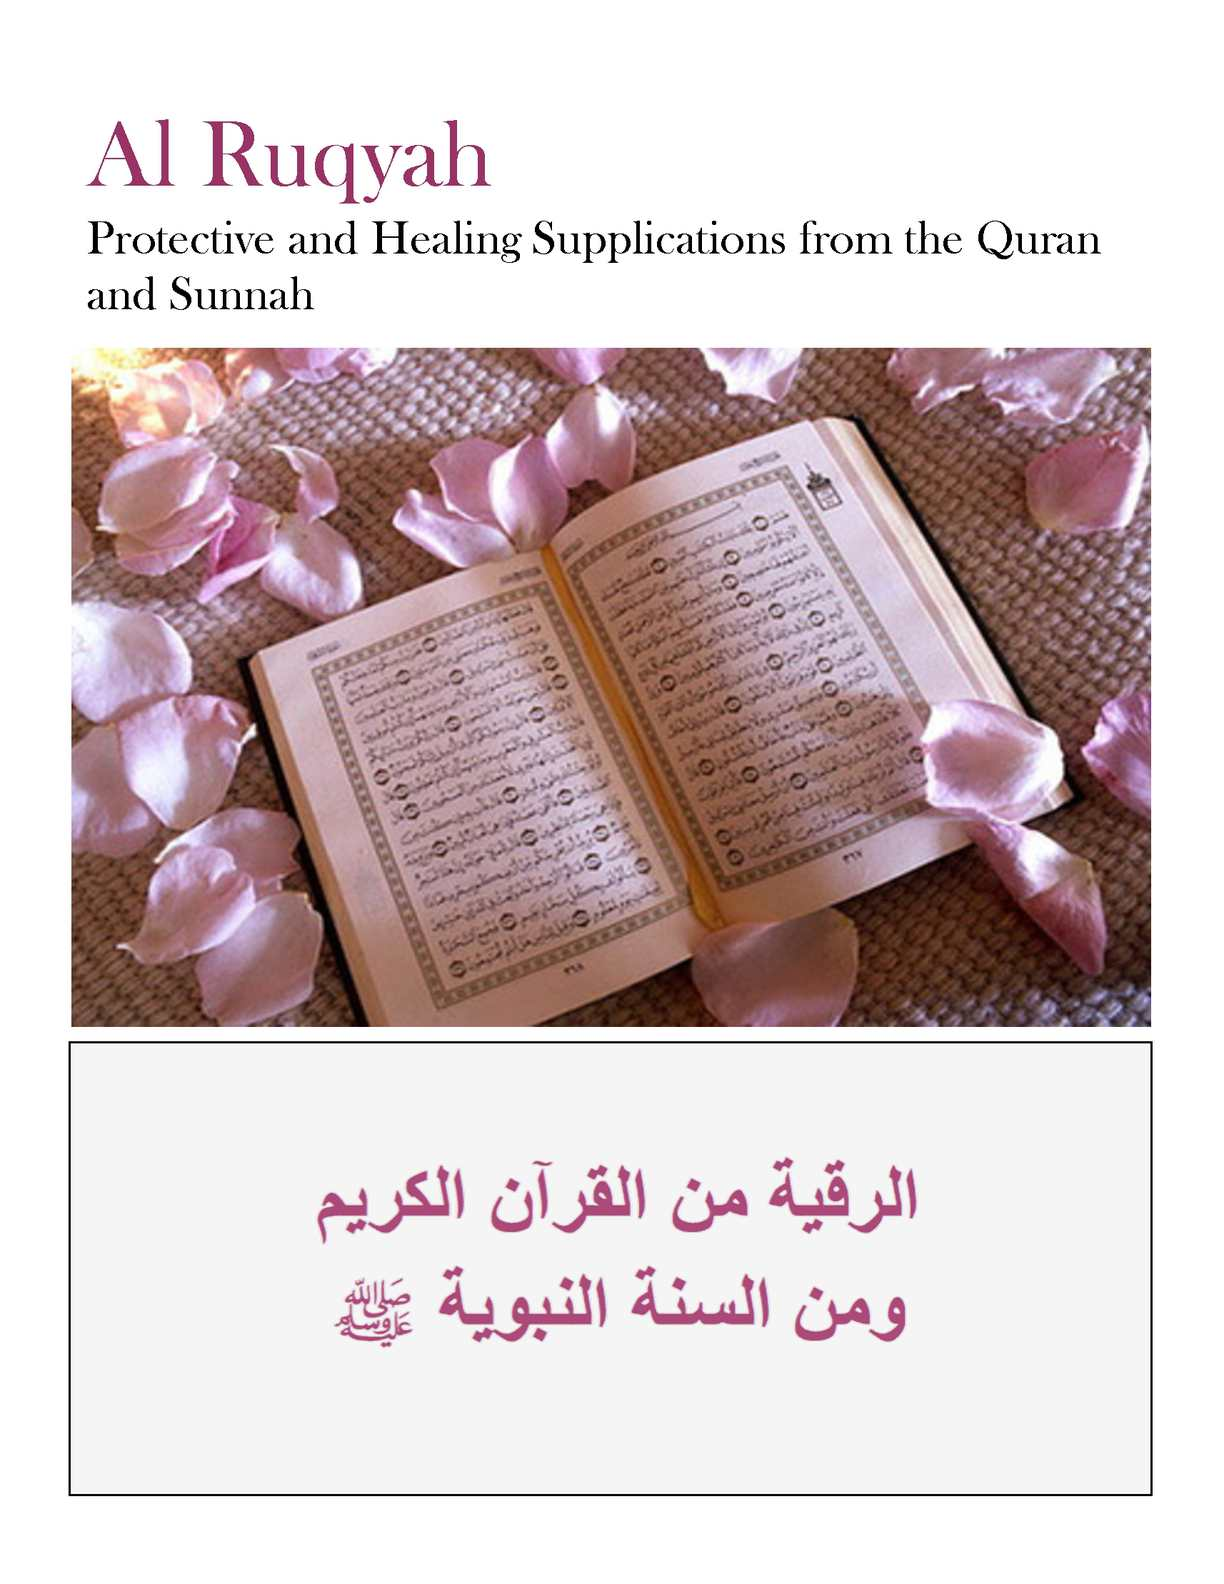 Al Ruqyah - Protective and Healing Supplications from the Quran and Sunnah